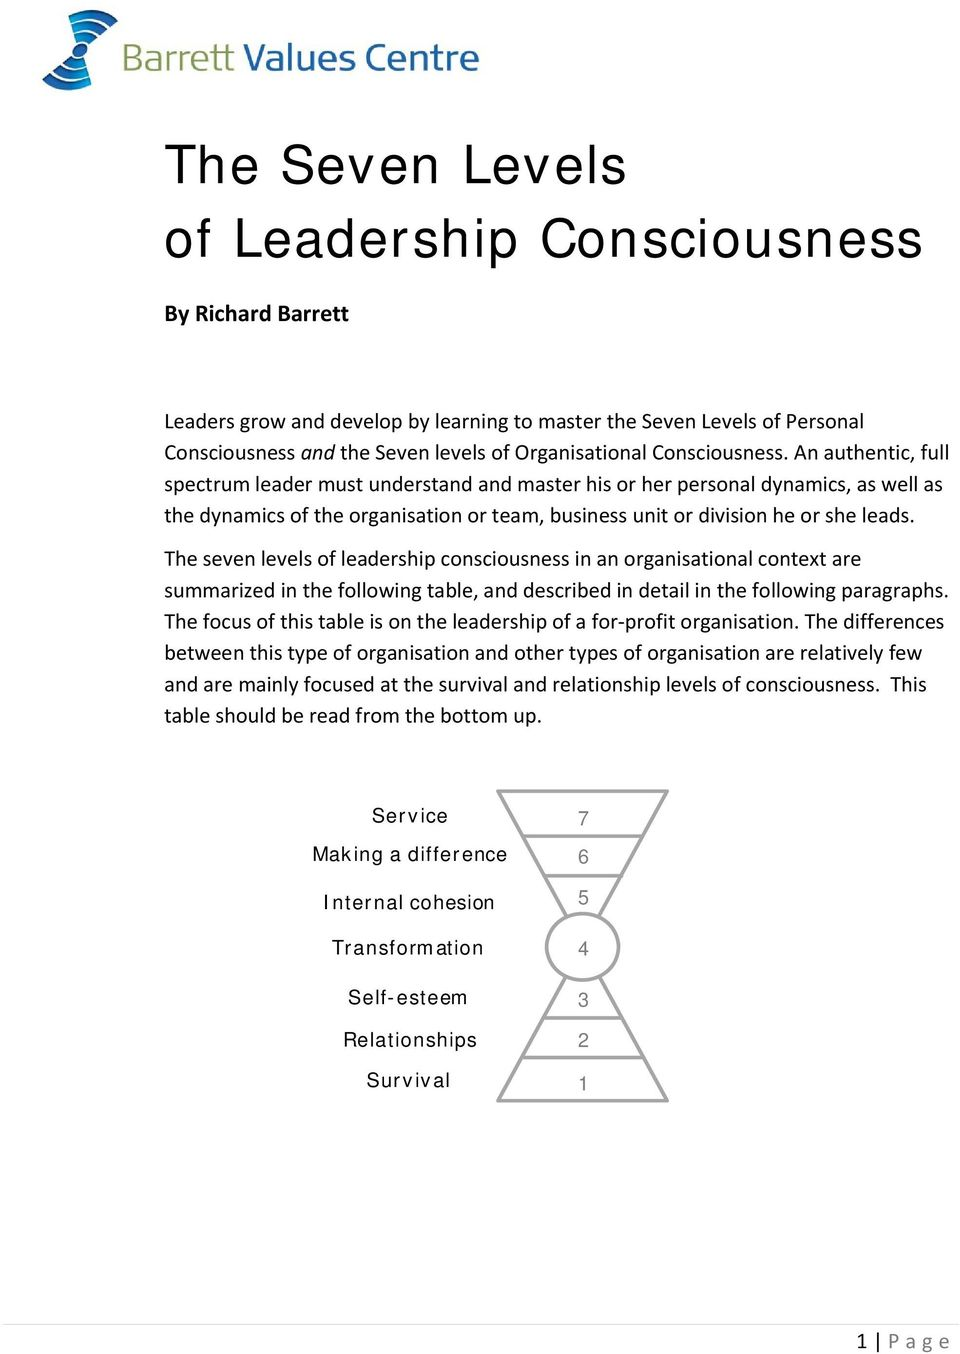 An authentic, full spectrum leader must understand and master his or her personal dynamics, as well as the dynamics of the organisation or team, business unit or division he or she leads.